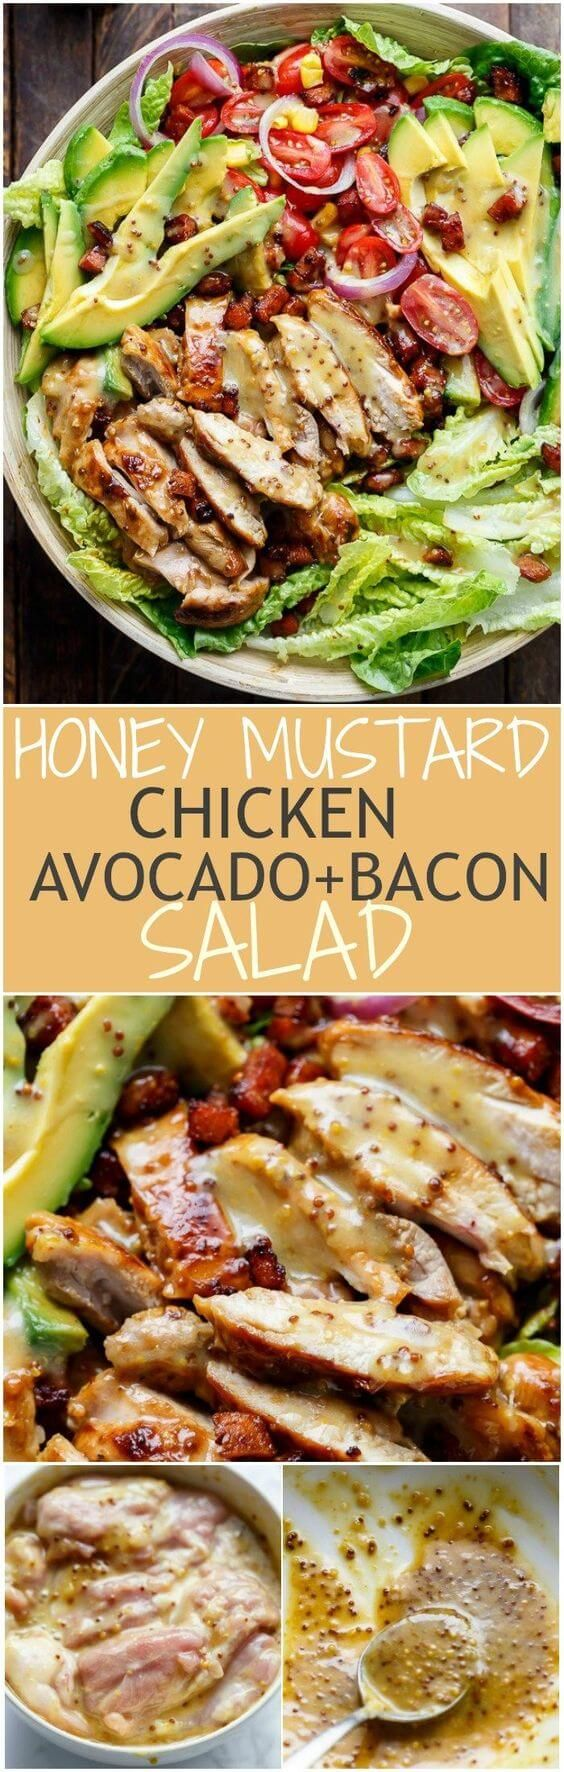 Clean Eating Honey Mustard Chicken, Avocado and Bacon Salad Recipe